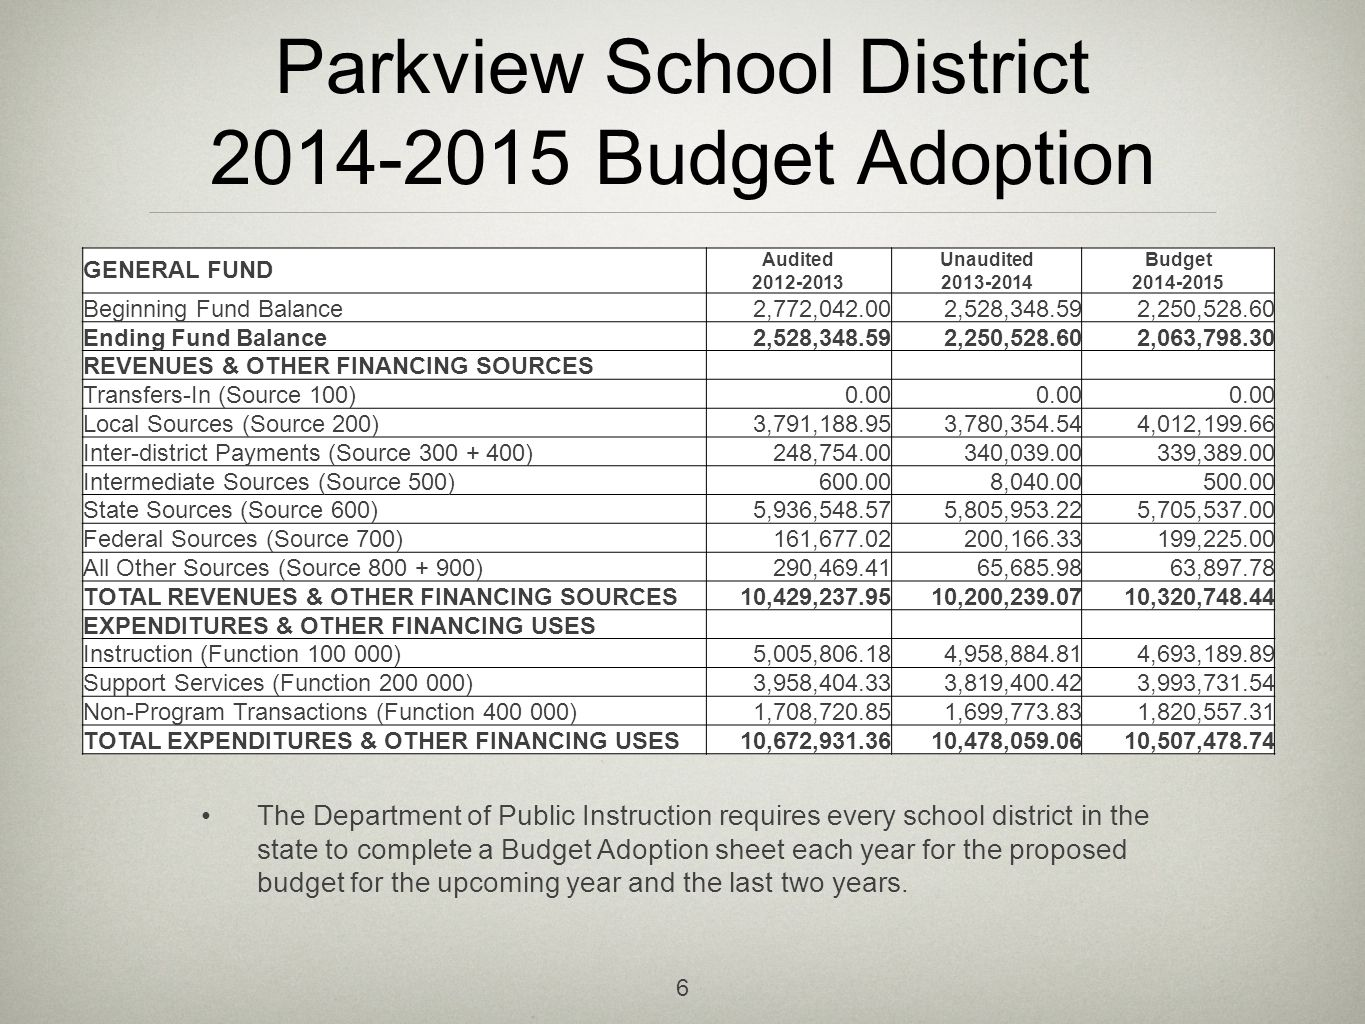 Parkview School District 2014-2015 Budget Adoption The Department of Public Instruction requires every school district in the state to complete a Budget Adoption sheet each year for the proposed budget for the upcoming year and the last two years.